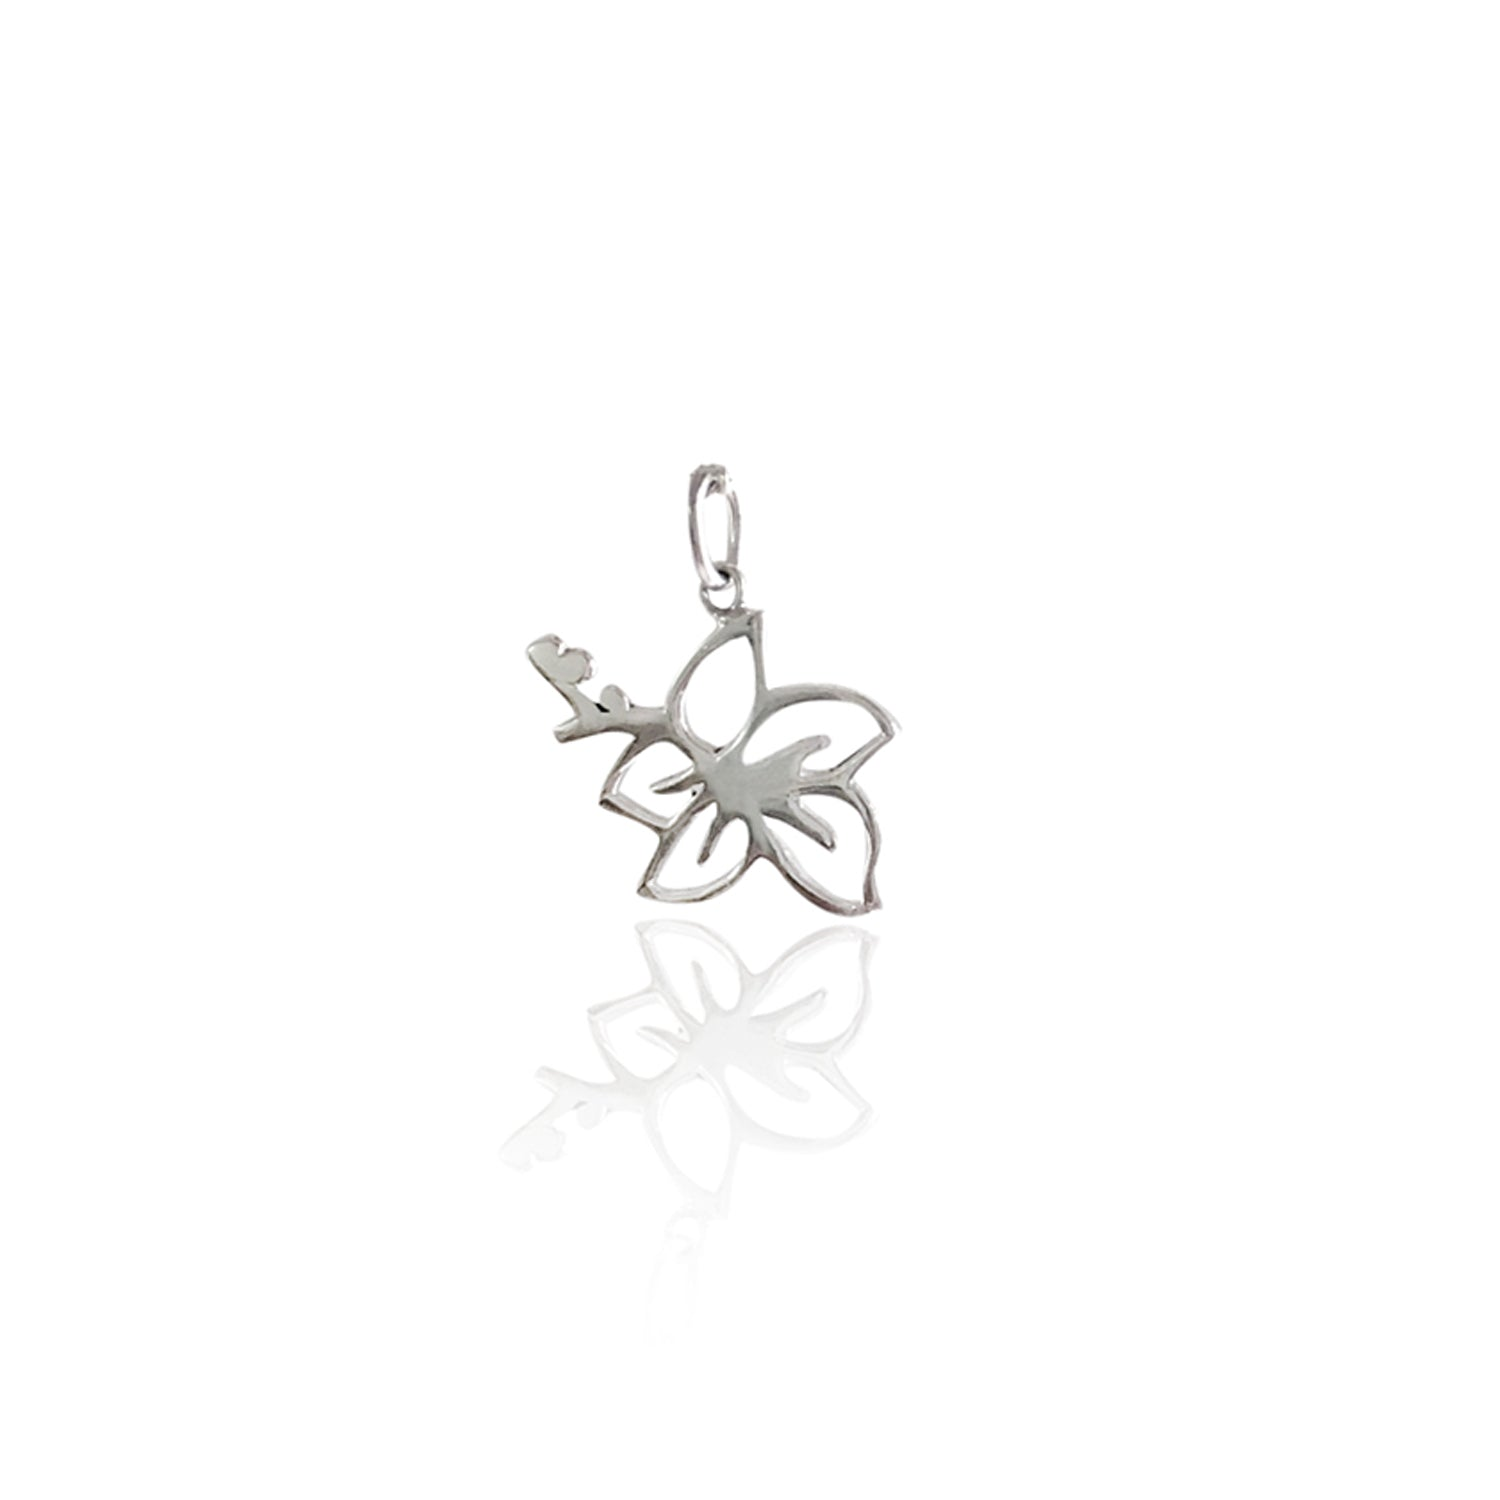 GOLDFISH KISS HIBISCUS FLOWER SILVER CHARM